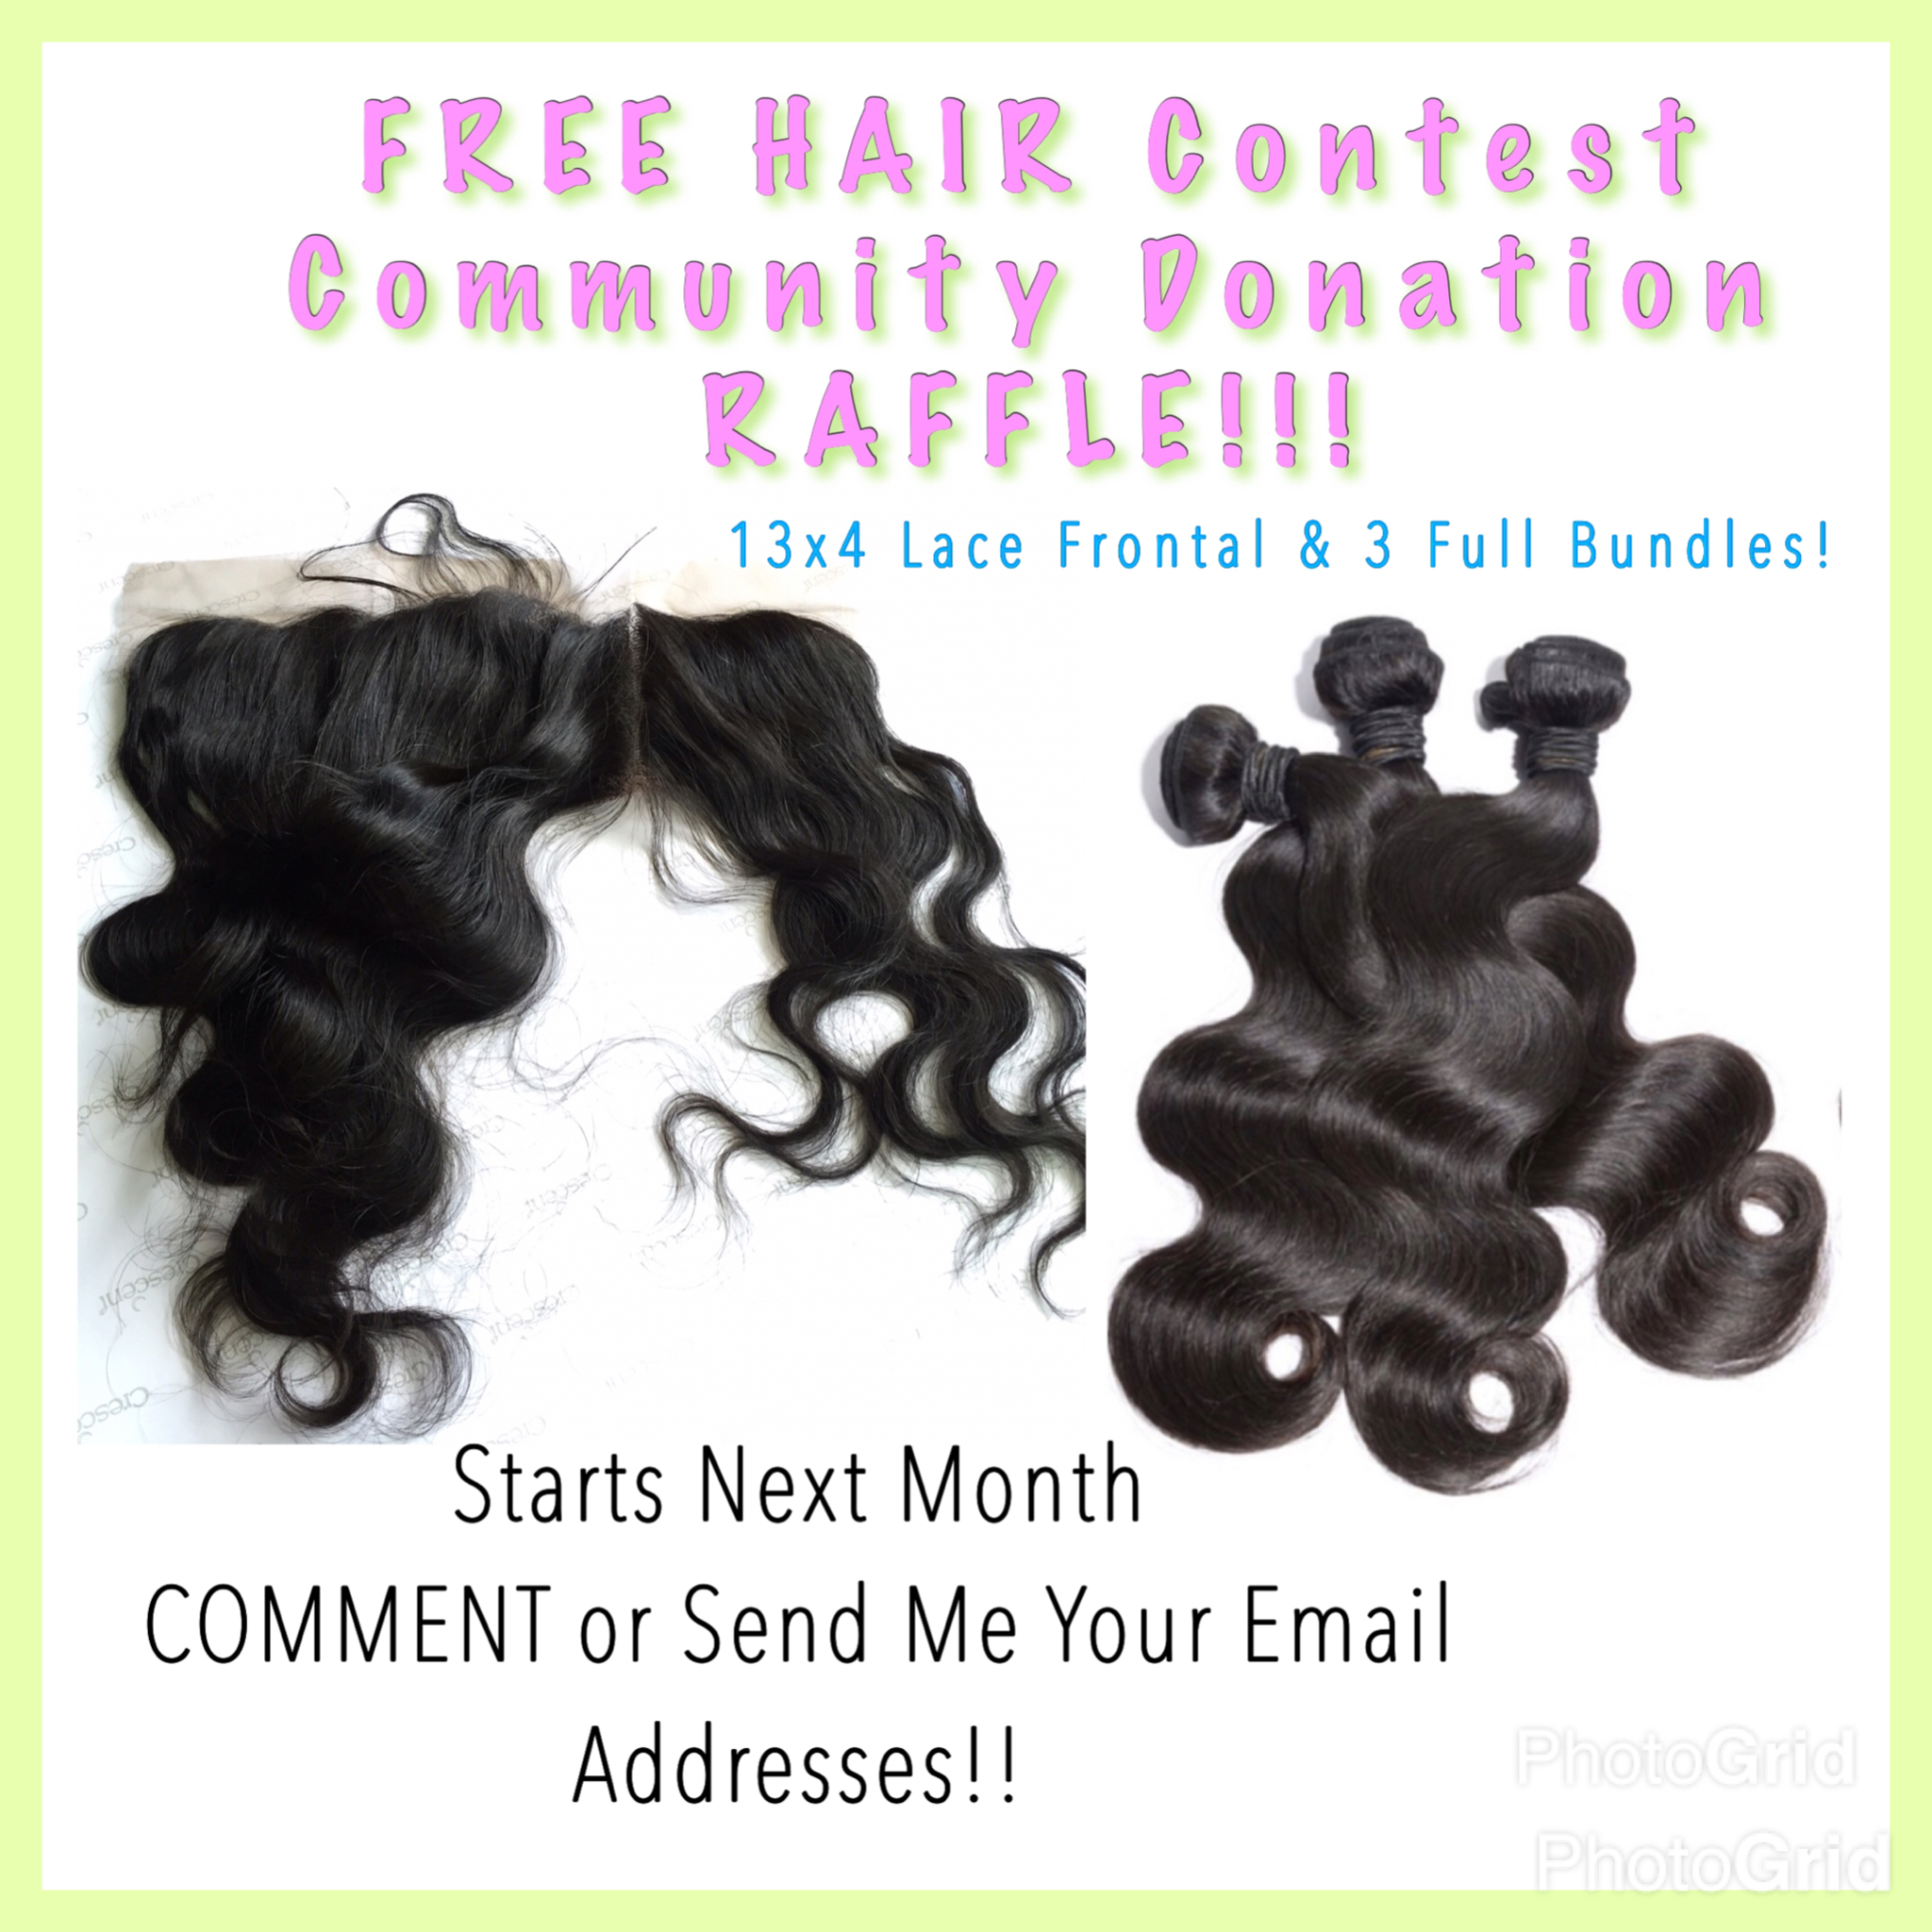 FREE 13x4 LACE FRONTAL & 3 BUNDLES Community Homeless Shelter ...